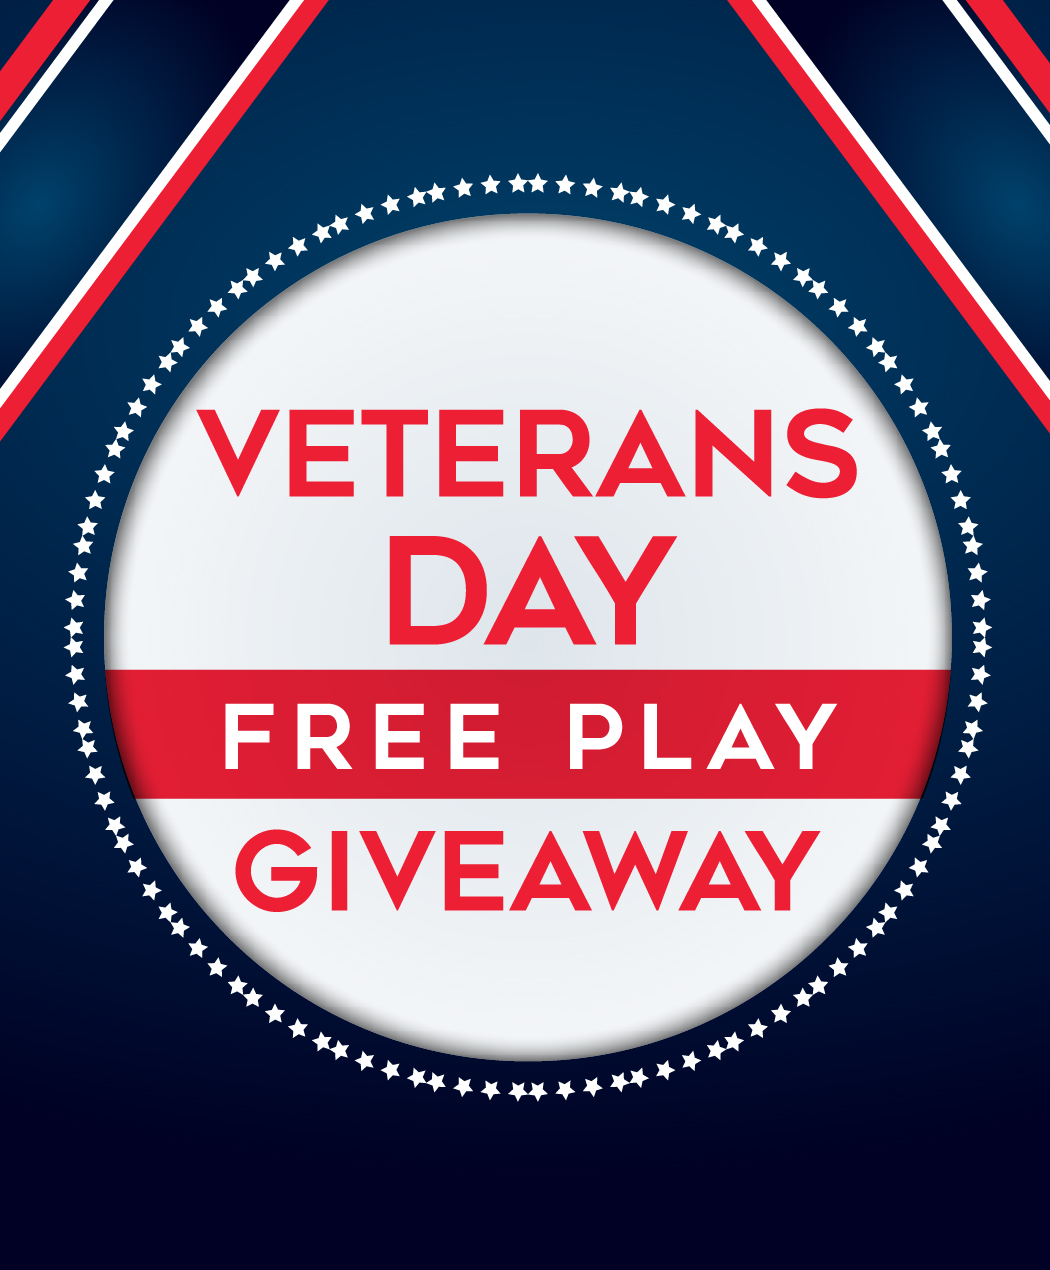 Veterans Day Free Play Giveaway